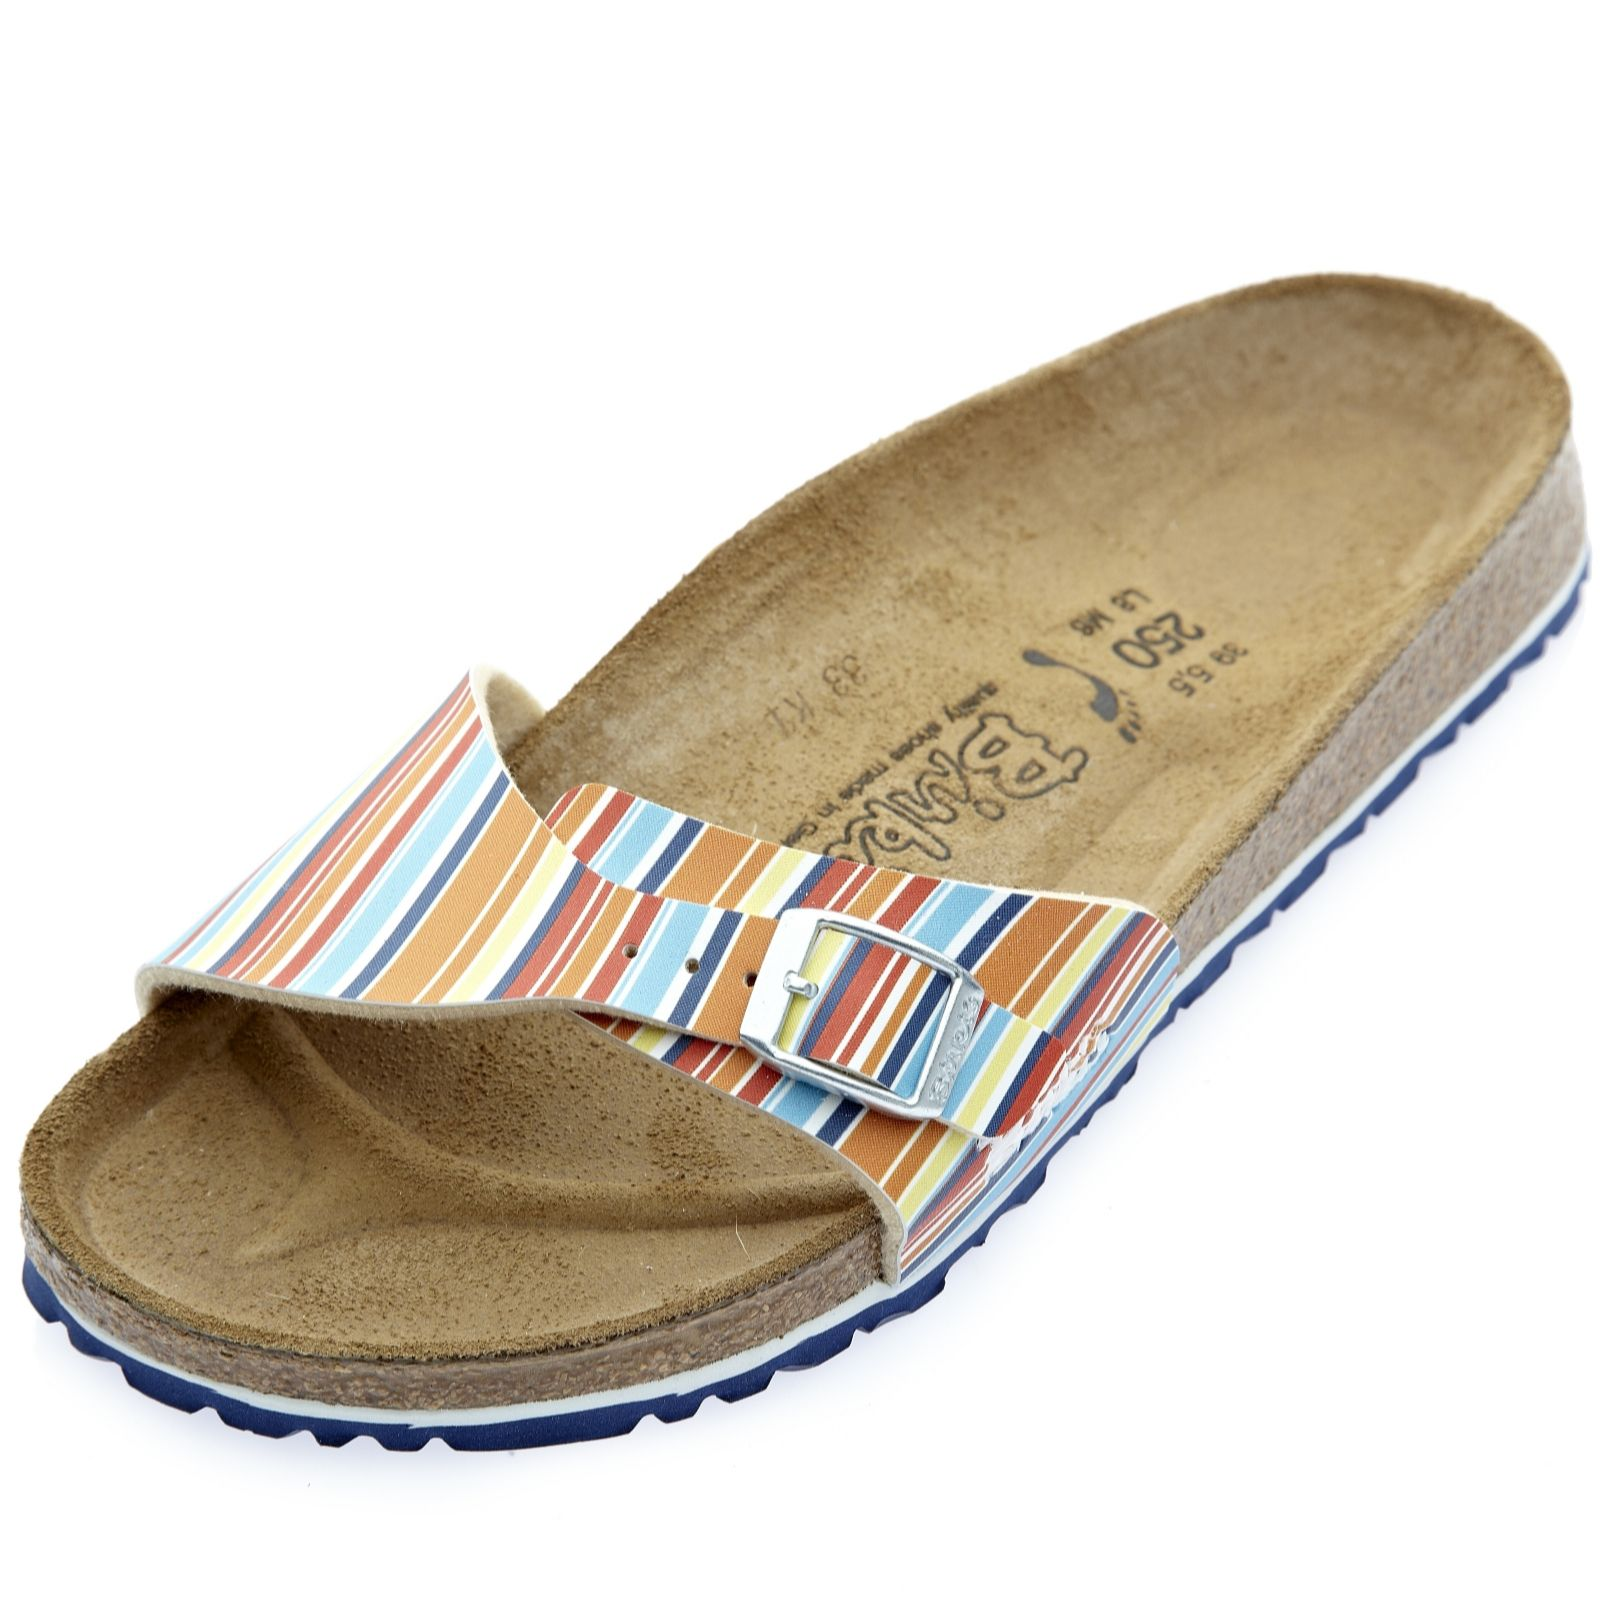 online store 87a78 713cb Birkis by Birkenstock Menorca All Over Stripes Sandal - QVC UK